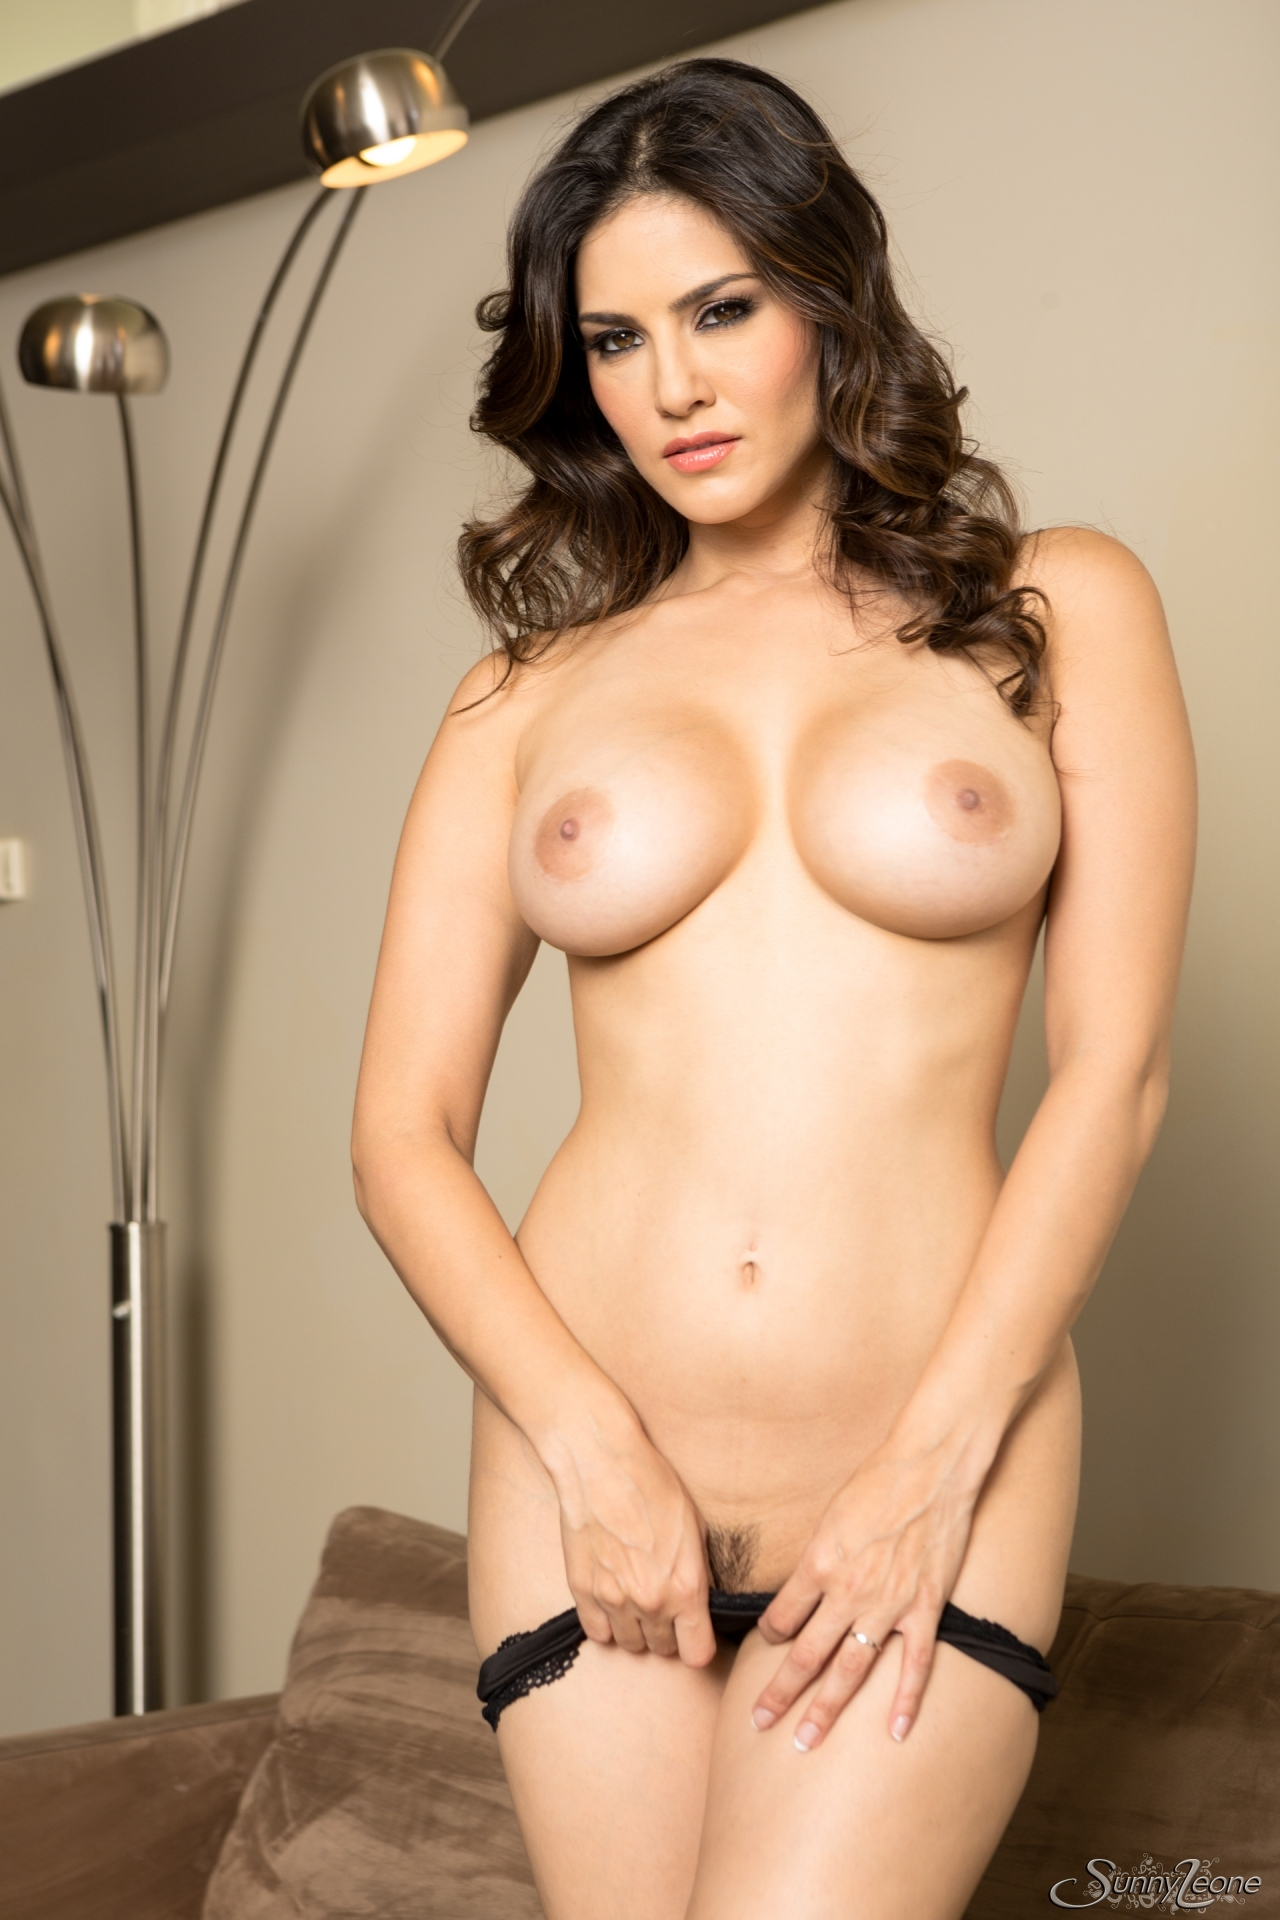 Sunny leone sex with a boy-7195